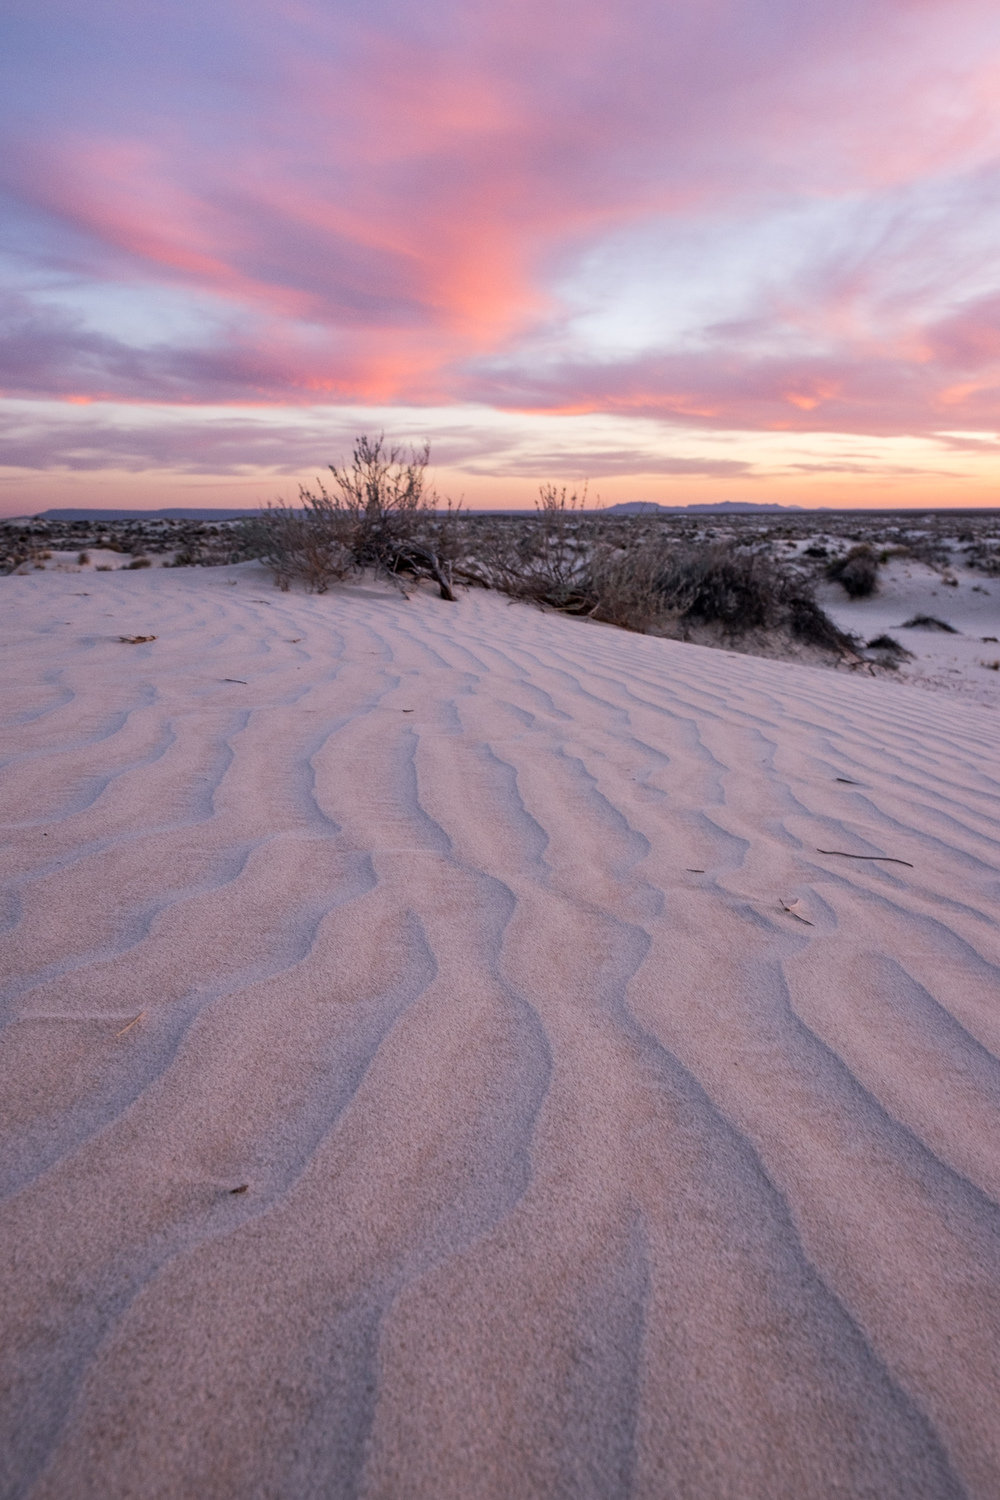 Sunset at Salt Basin sand dunes.